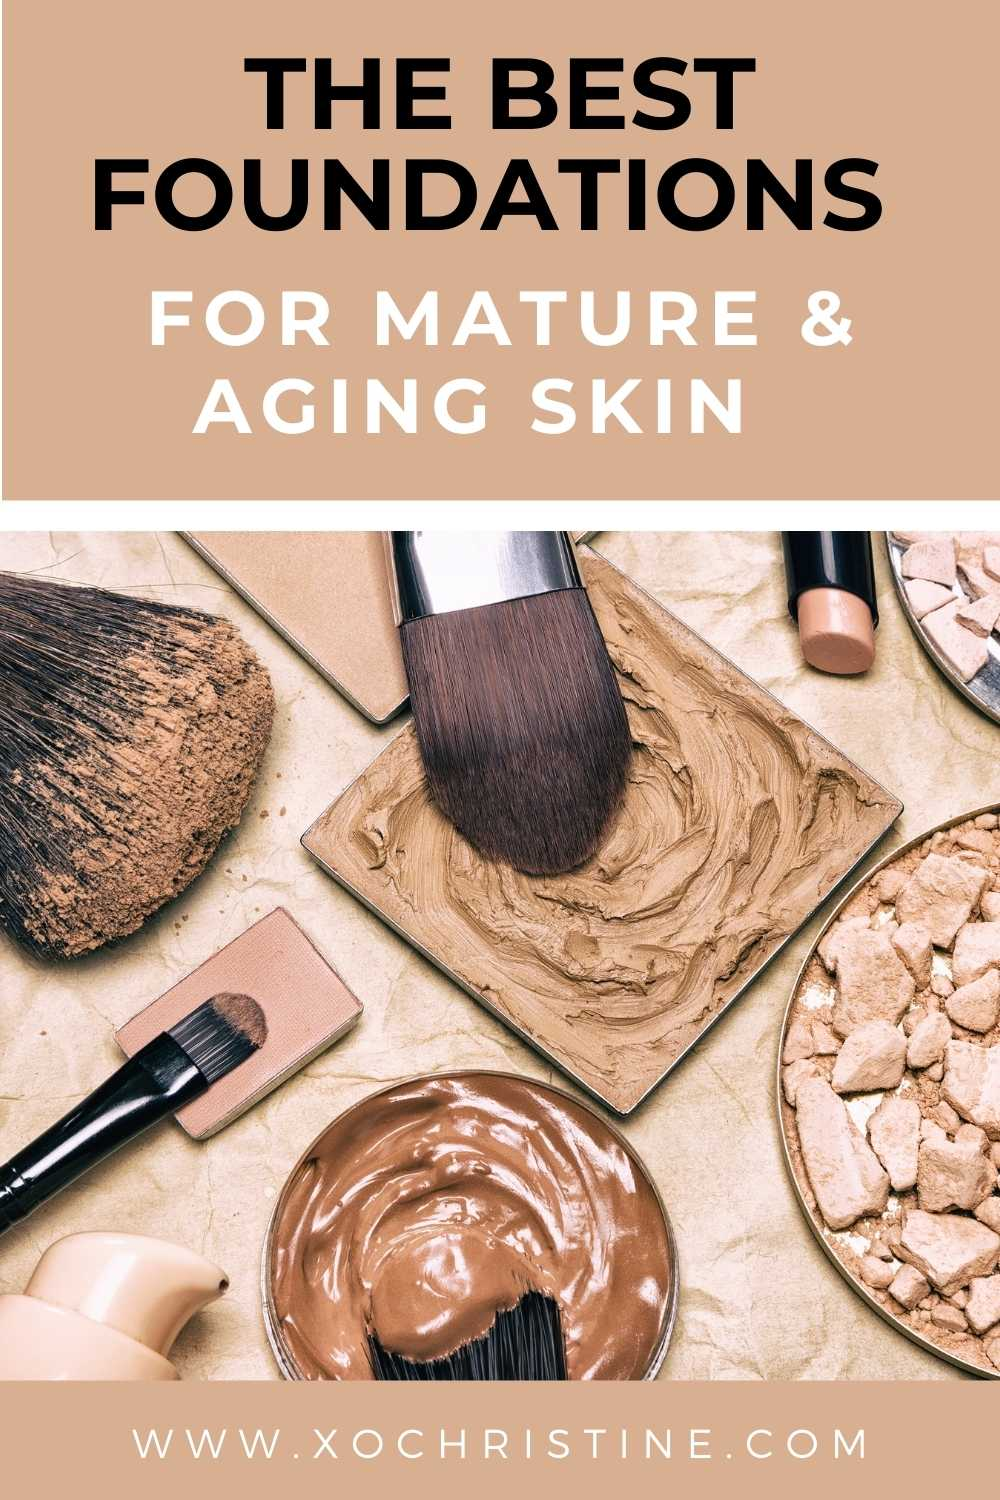 The Best Foundations for Mature Skin  (For women over 40)